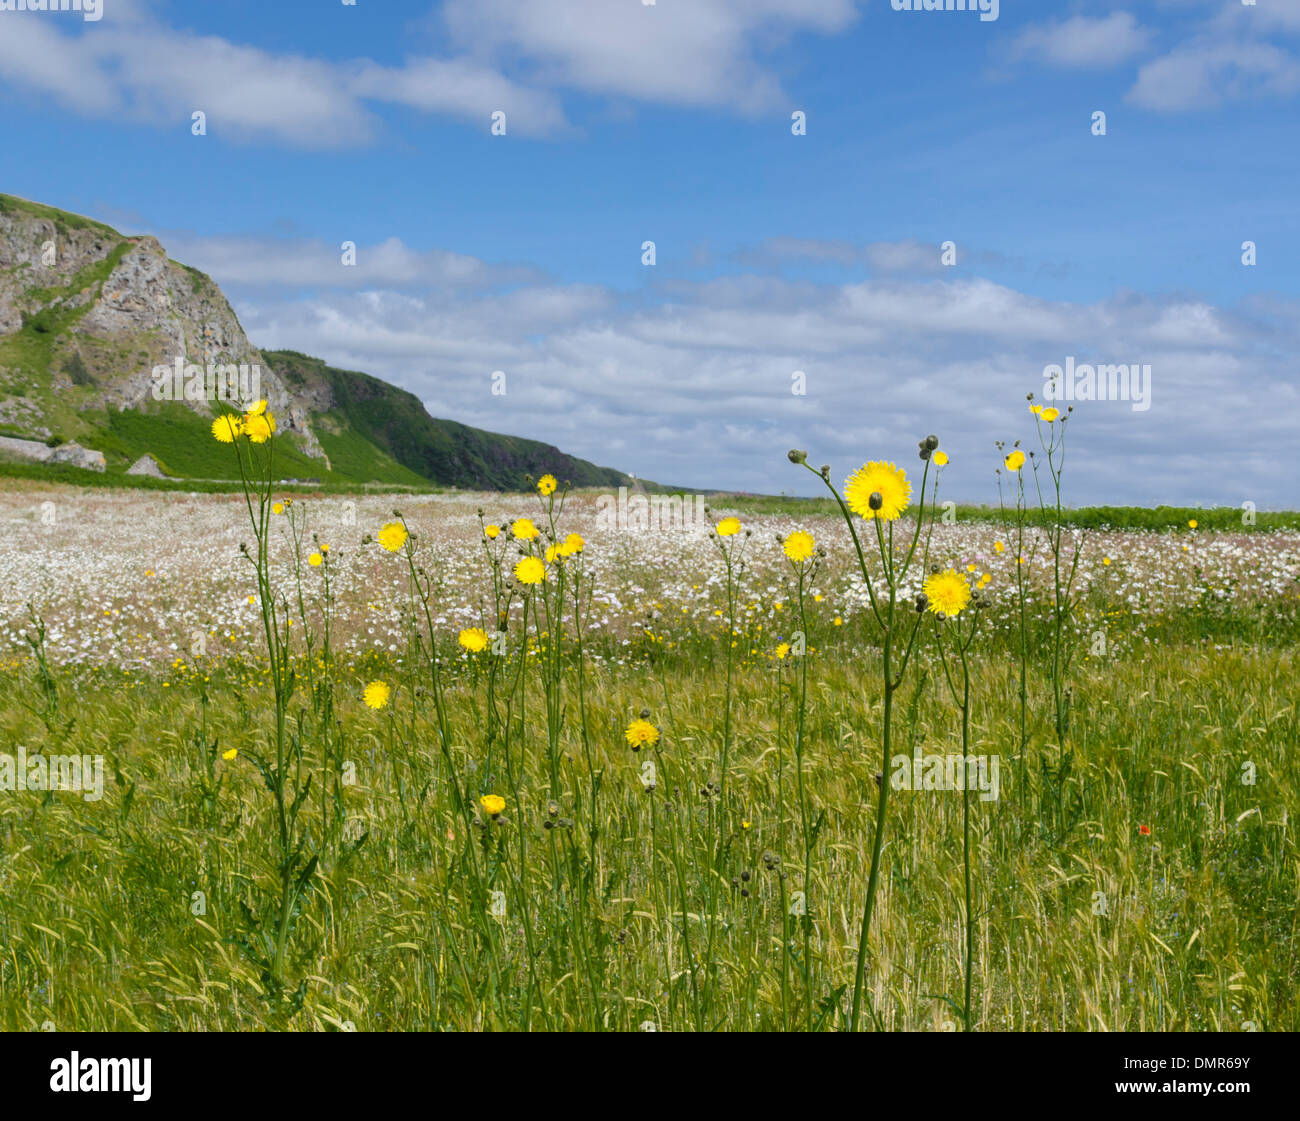 giant yellow daisies St Cyrus north sea coast - Stock Image